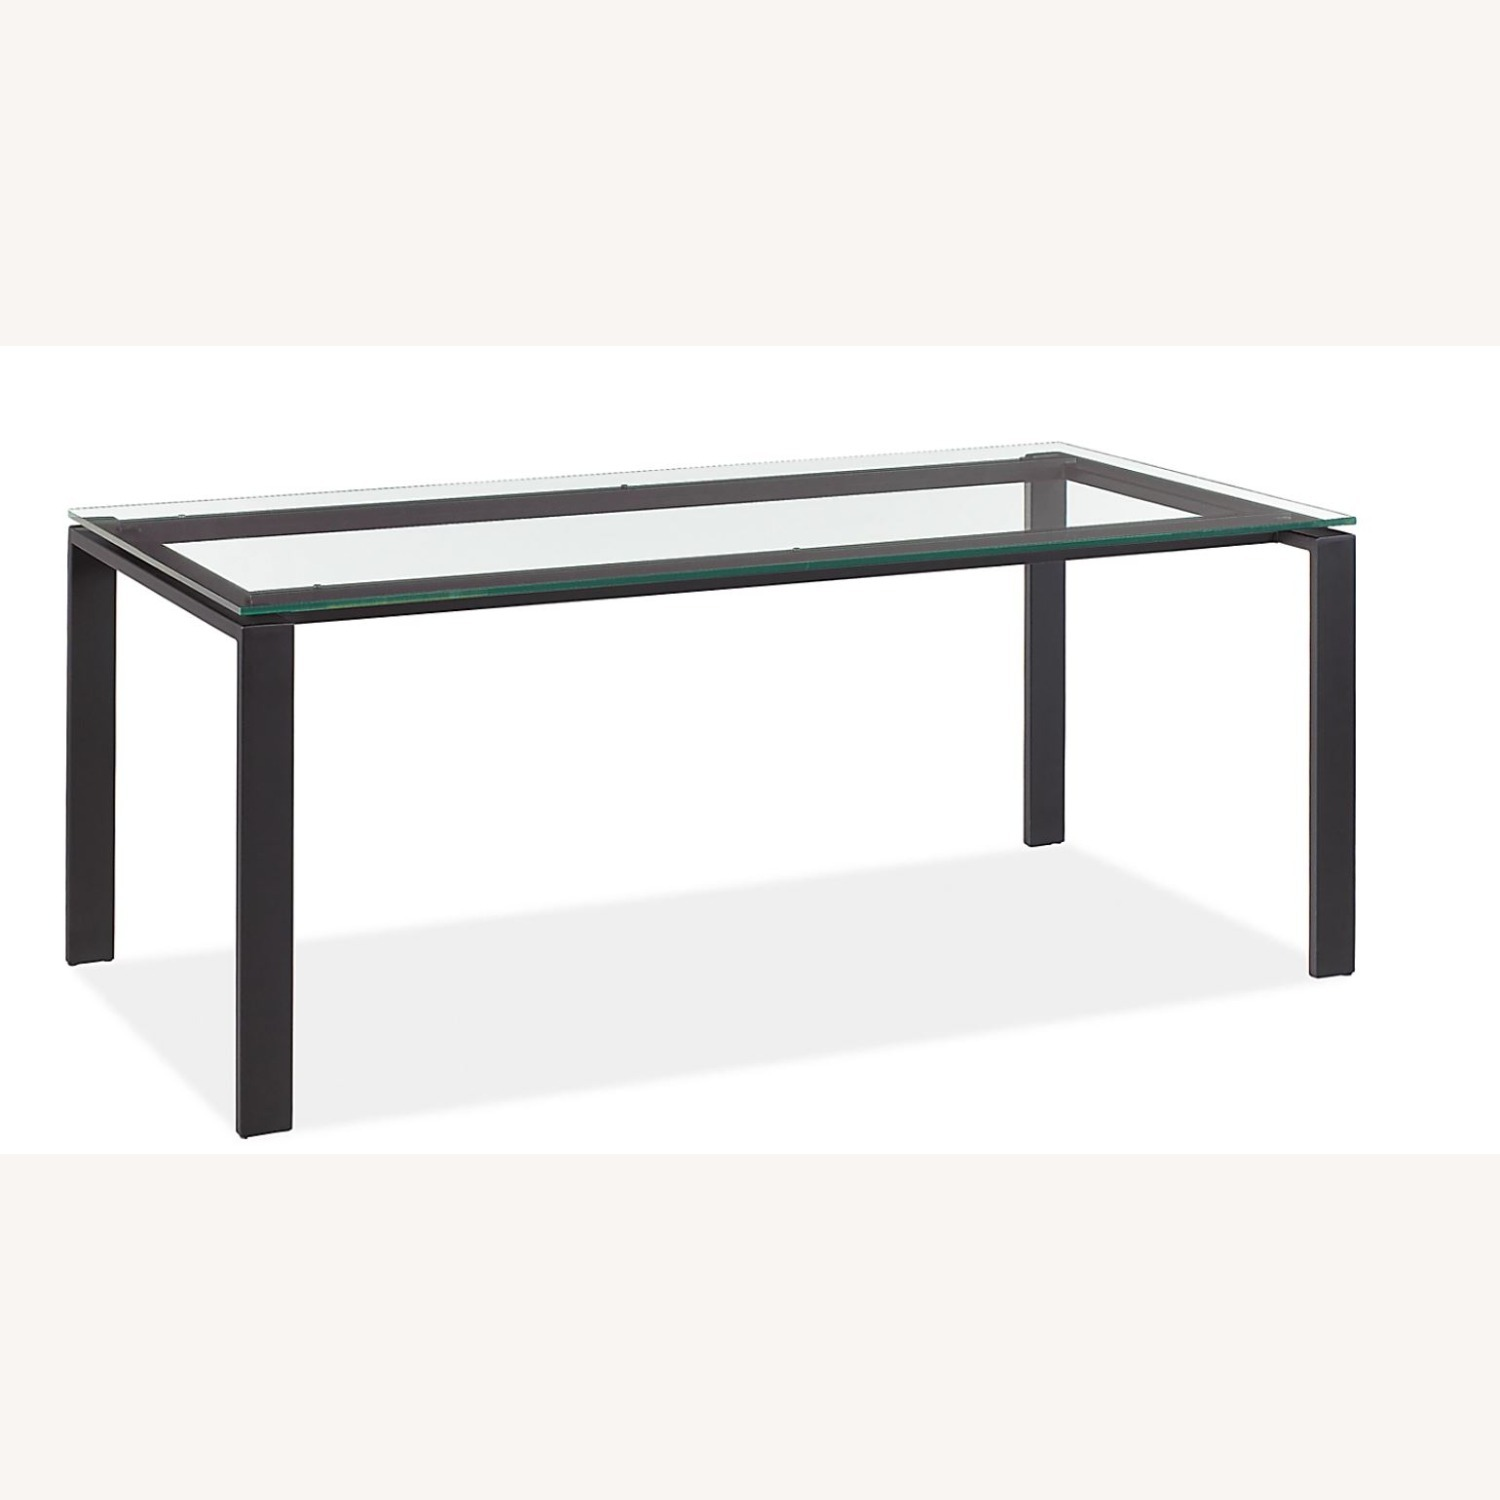 Room & Board Rand Dining Table - image-1